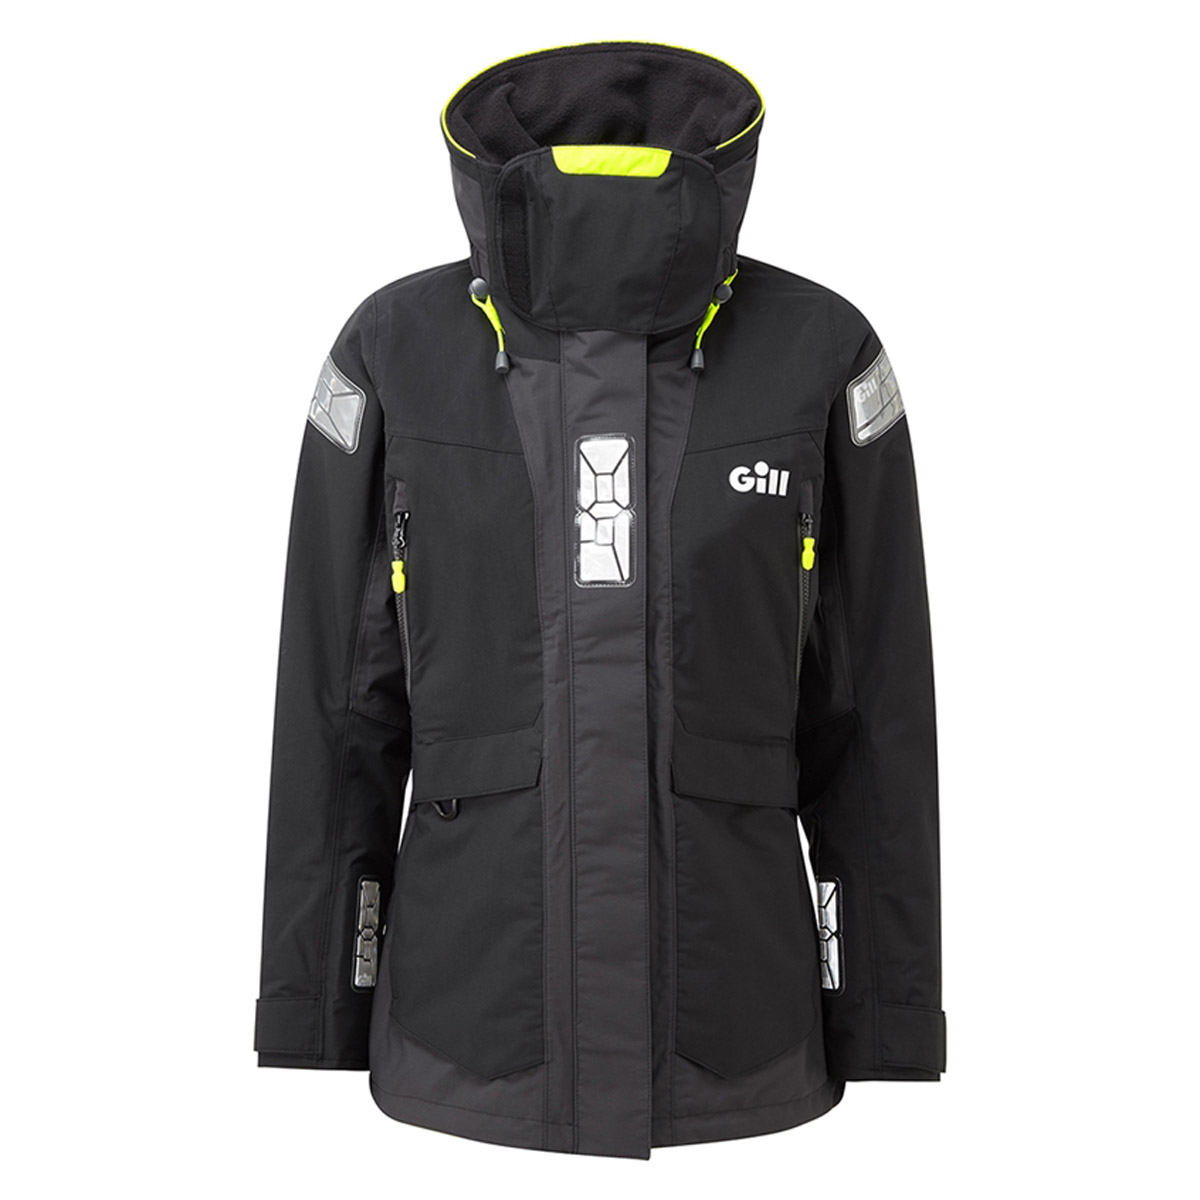 GILL WOMEN'S OS2 OFFSHORE JACKET (OS24JW)